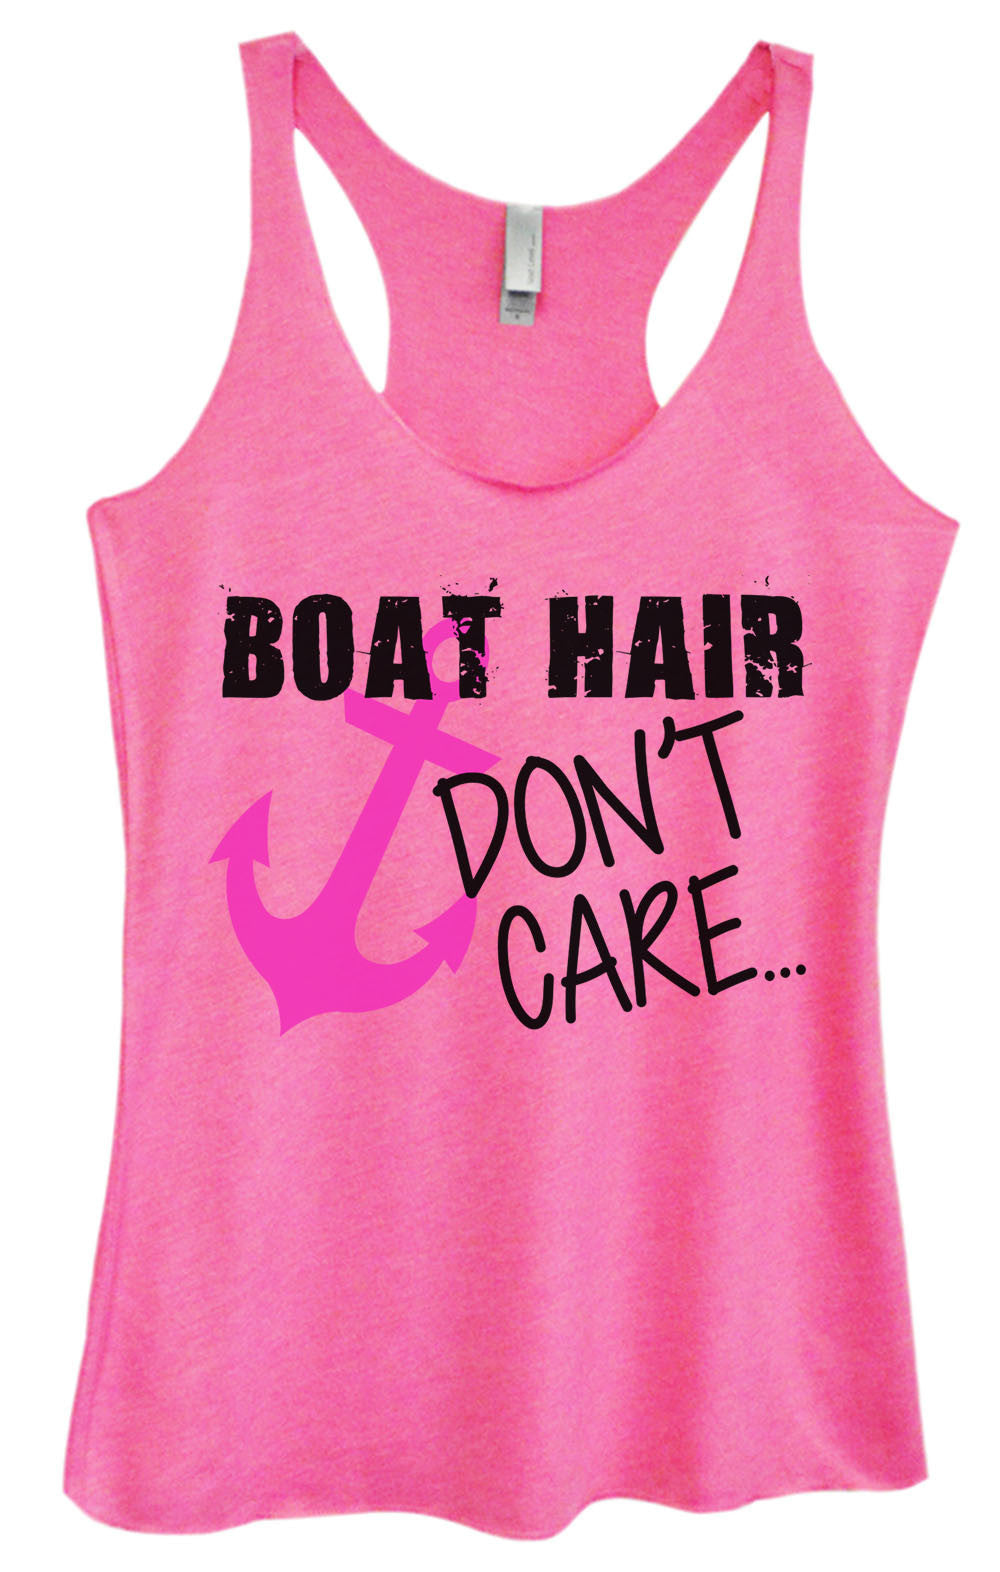 Womens Fashion Triblend Tank Top - Boat Hair Don't Care - Tri-691 - Funny Shirts Tank Tops Burnouts and Triblends  - 4